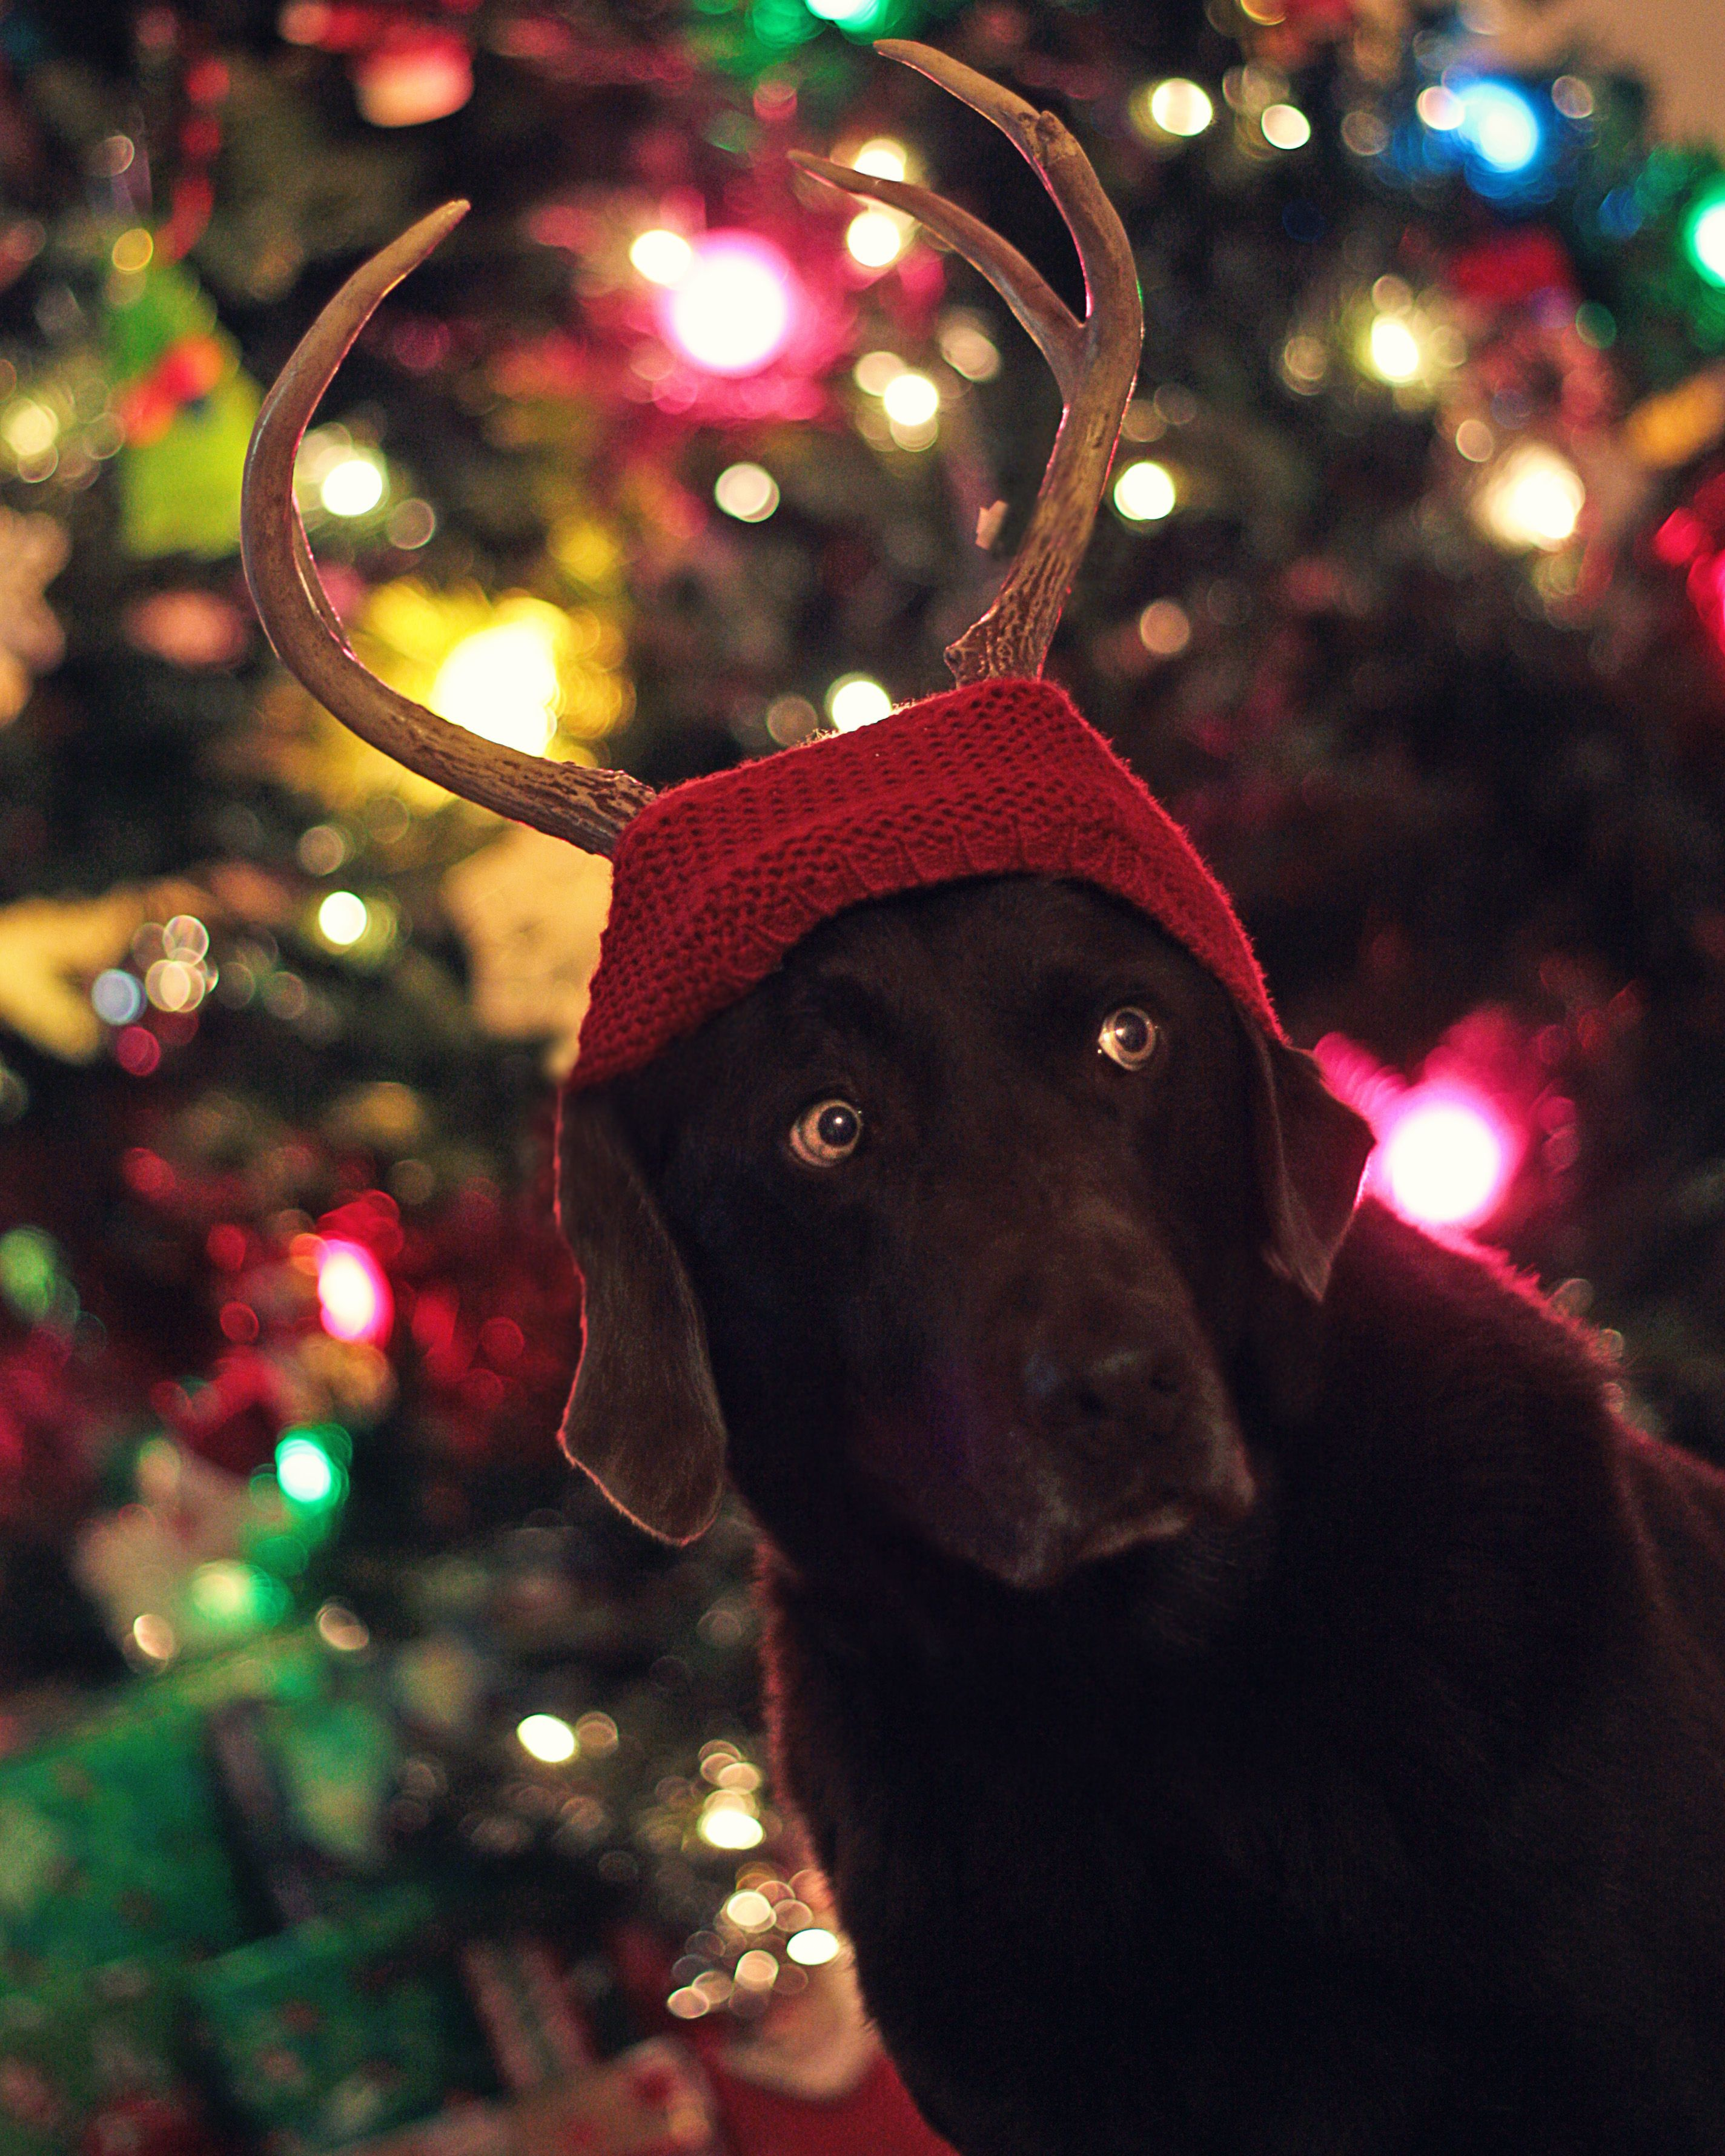 Merry Christmas from Bear the dog!